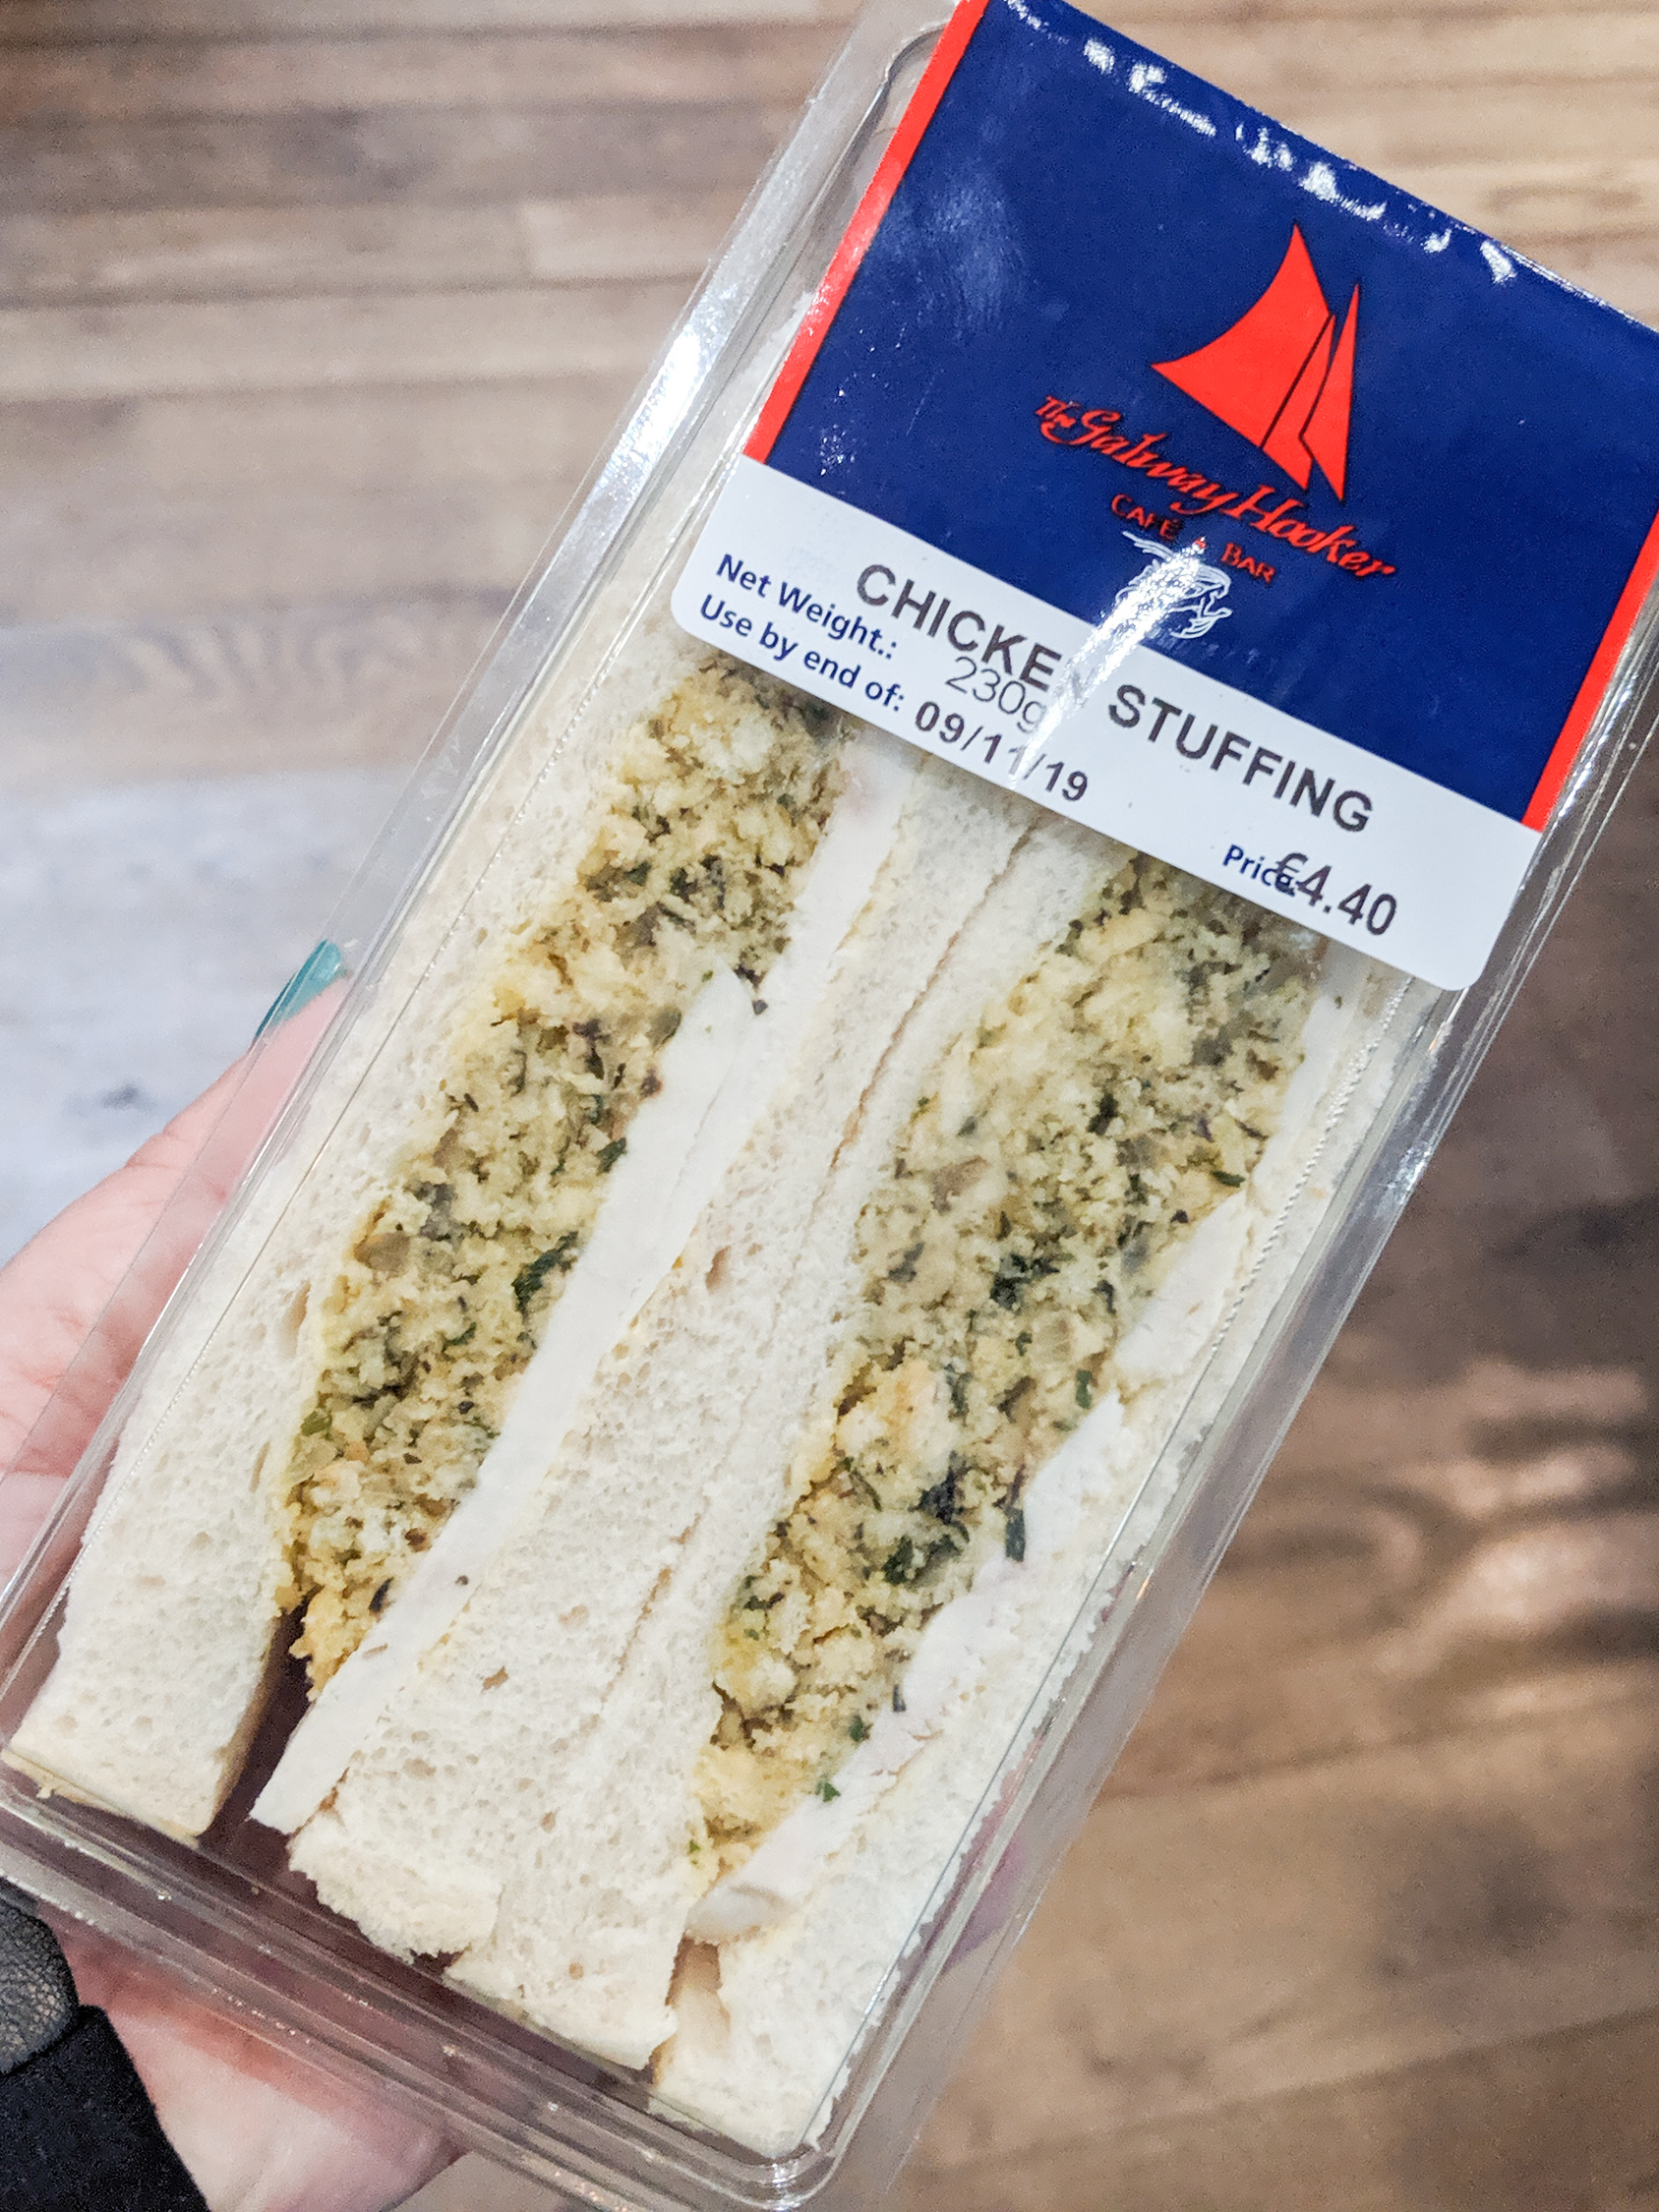 Chicken and stuffing sandwich sold at a grocery store is a popular Dublin food.